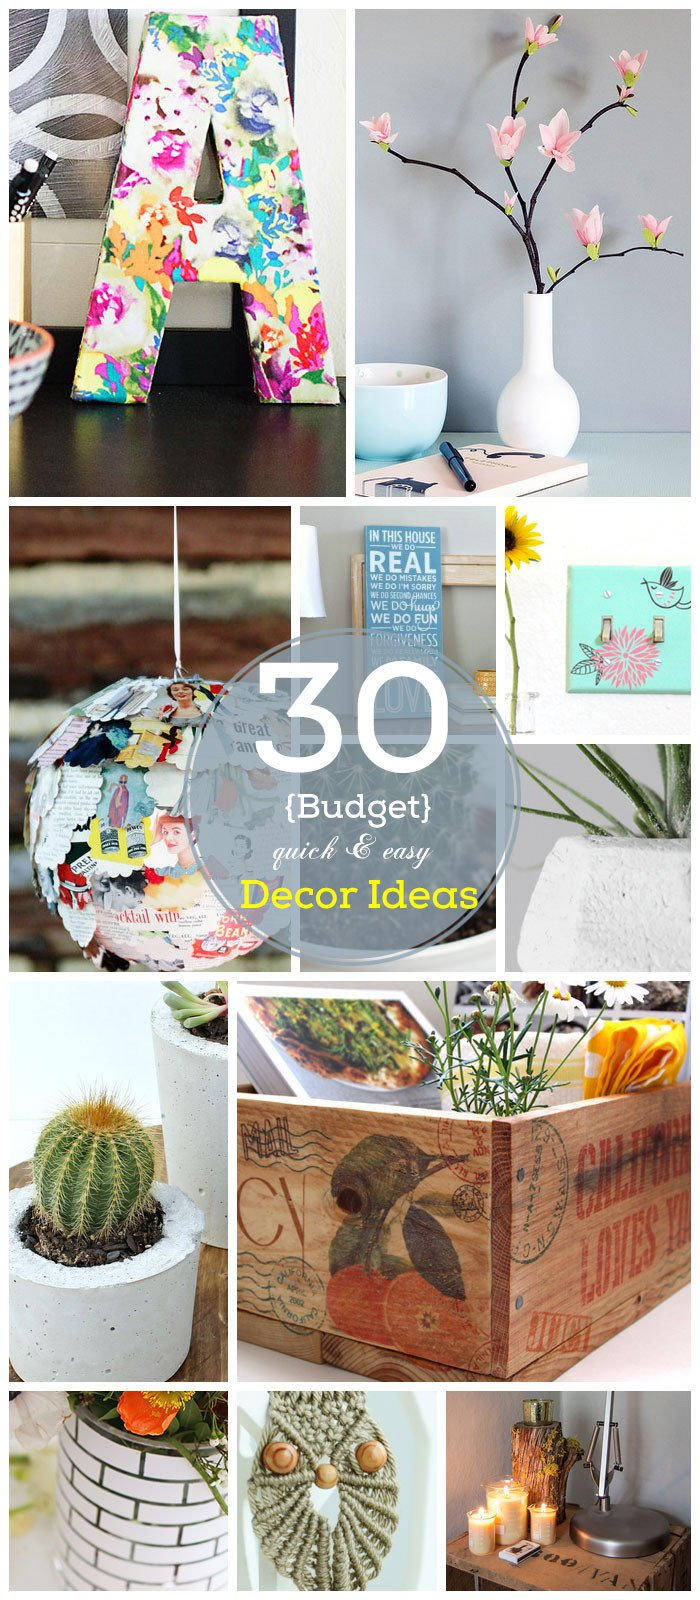 Diy Home Decor Ideas Budget Elegant 30 Diy Home Decor Ideas On A Bud